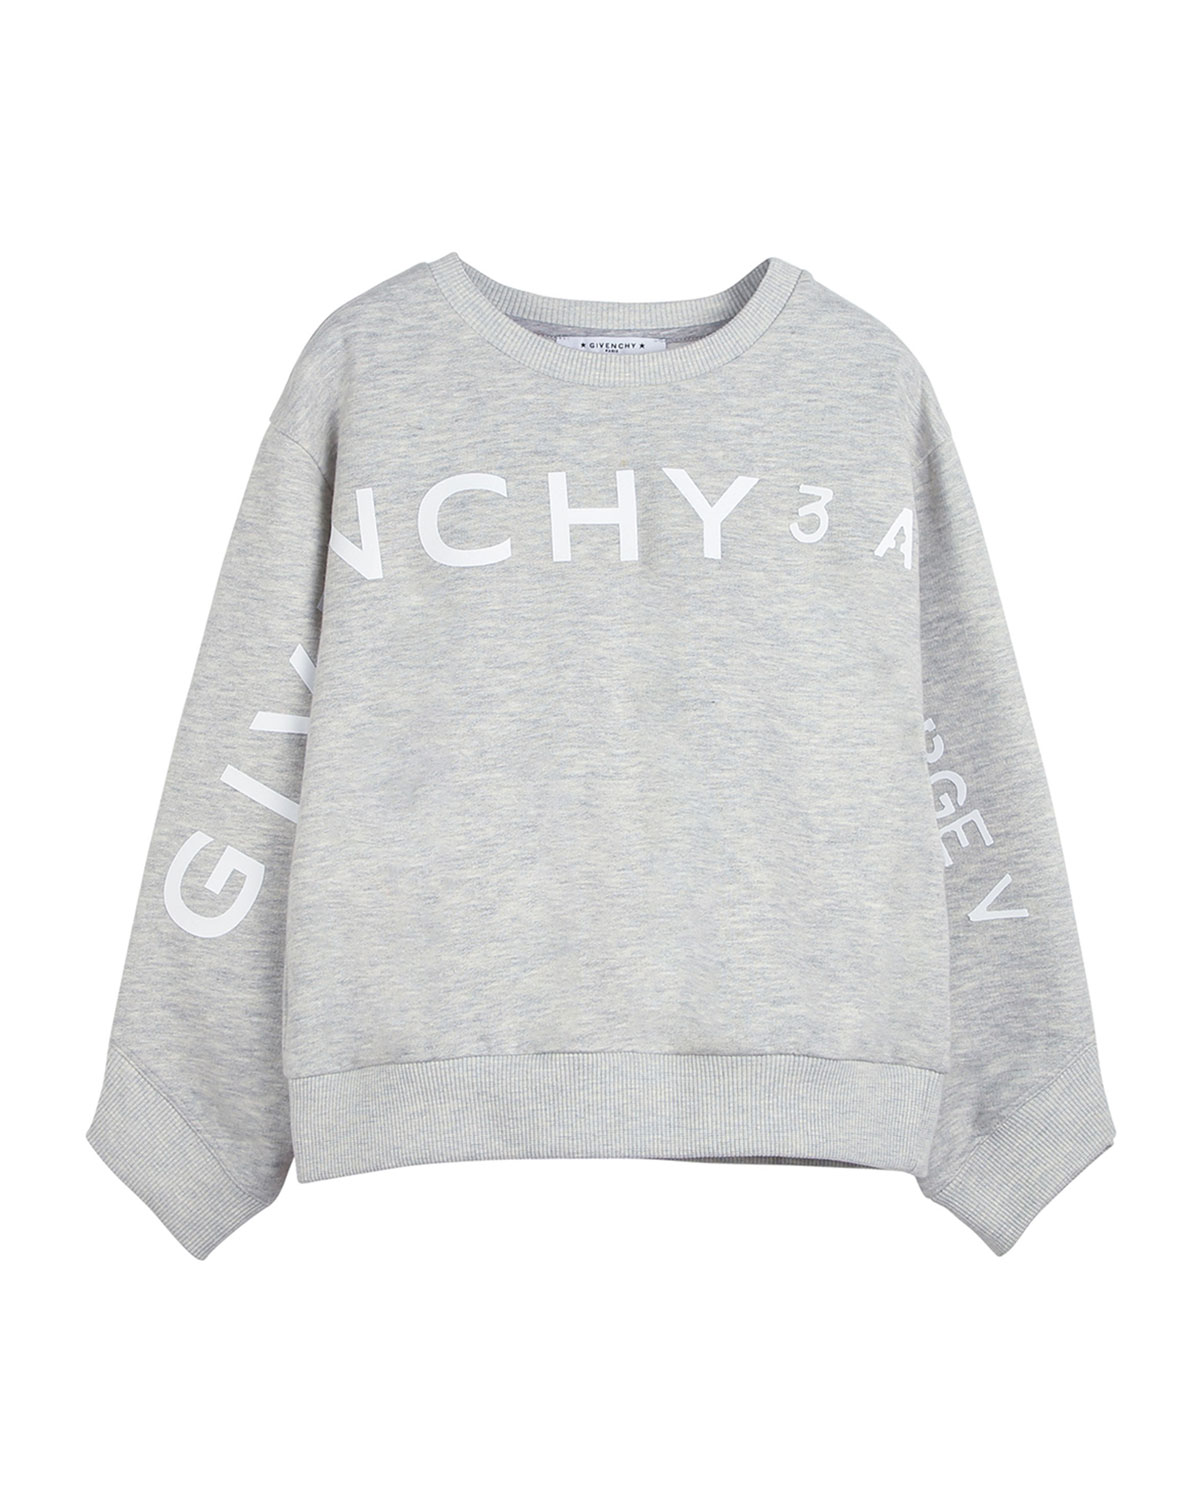 Givenchy Girl's Logo Address Heathered Sweatshirt, Size 4-10